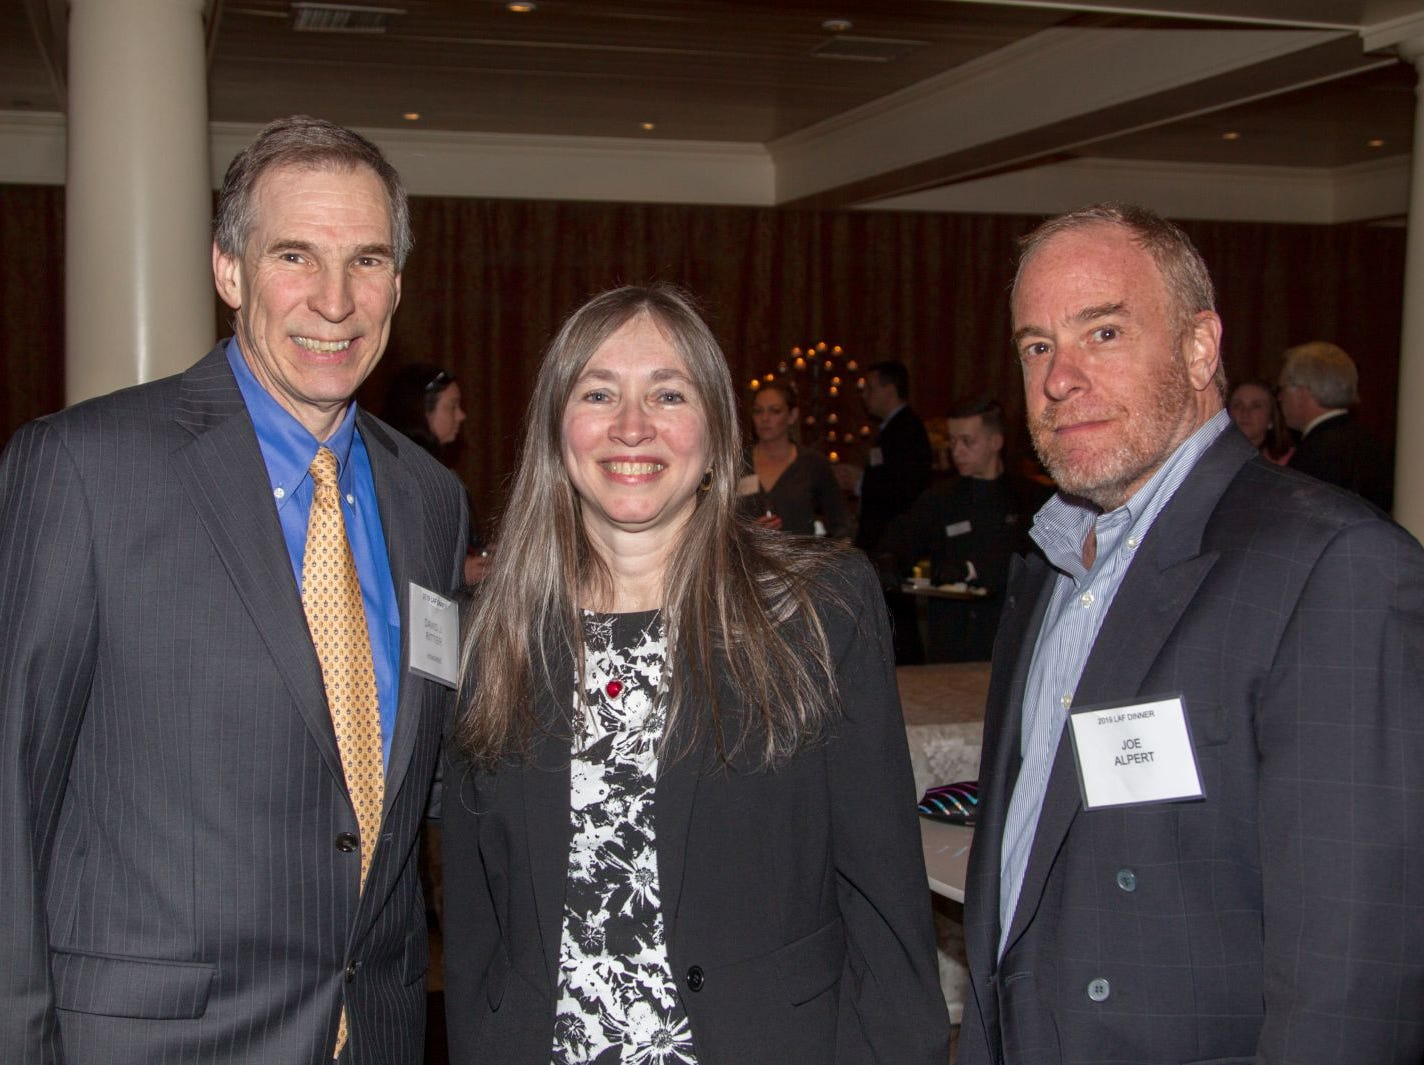 David Ritter, Deborah Ritter, Joe Alpert. Eva's Village hosted its second annual Lawyers, Accountants and Financial Professionals Benefit Dinner at Westmount Country Club in Woodland Park. 02/21/2019